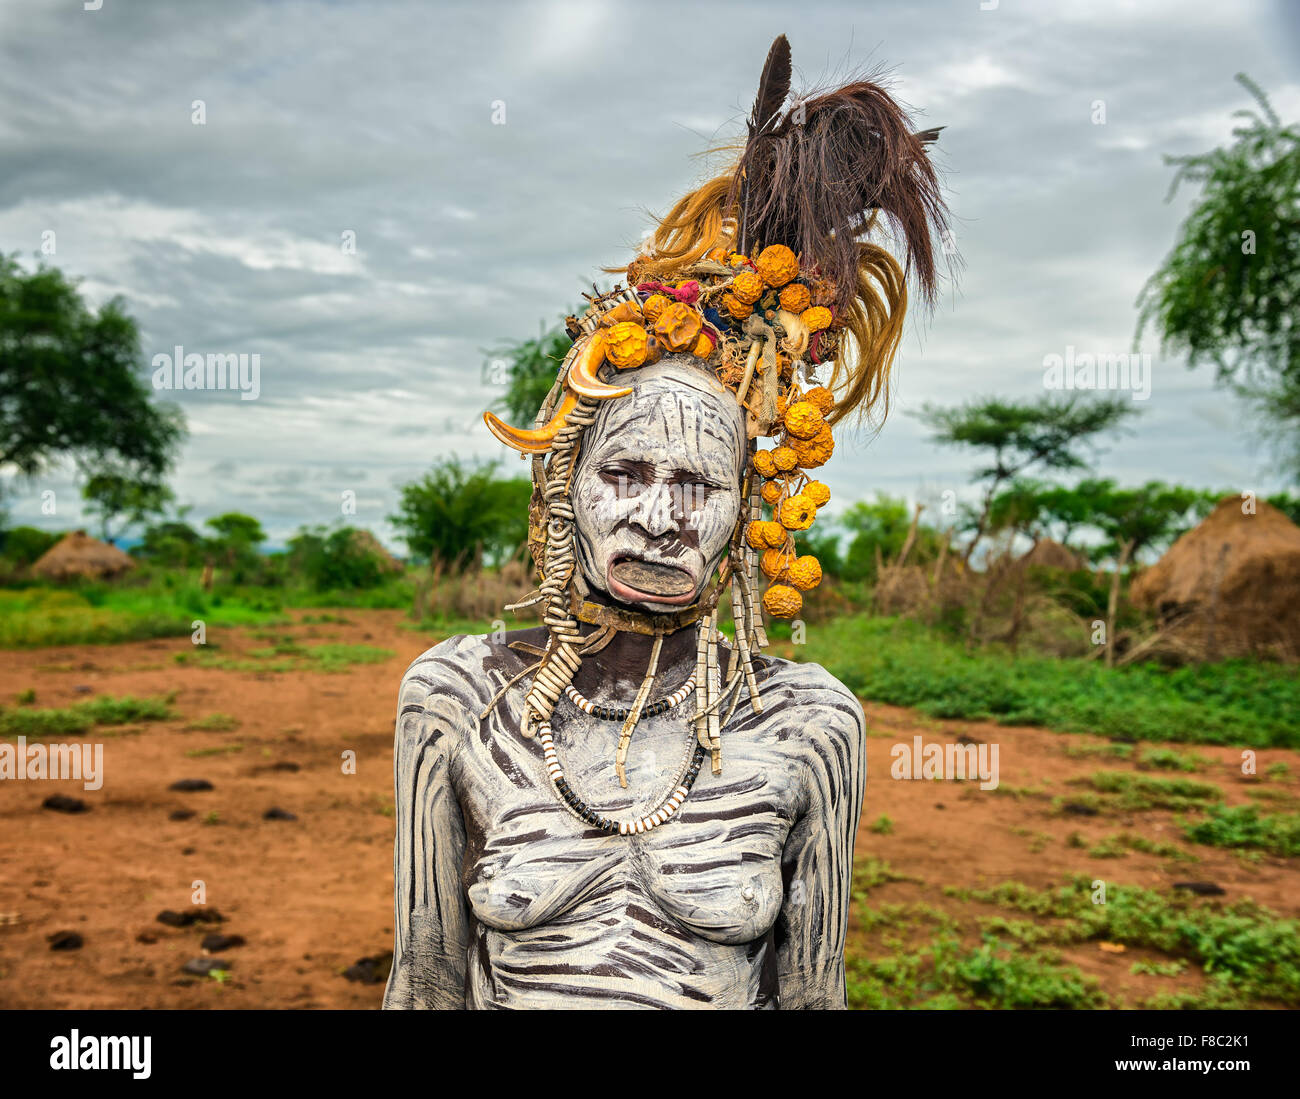 Old woman from the african tribe Mursi with lip plate in her village - Stock Image